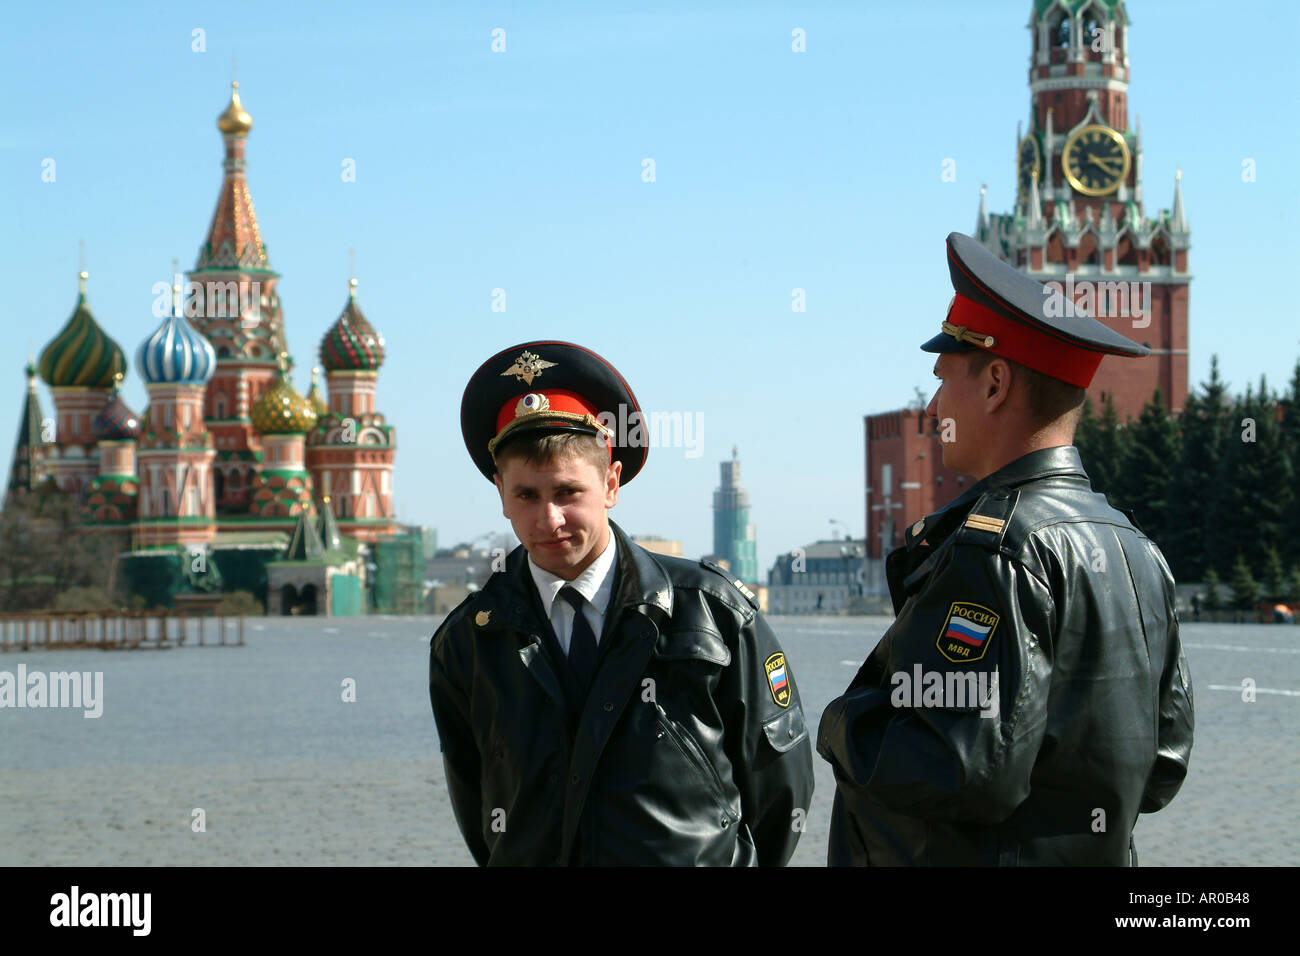 Russian Occupation Stock Photos & Russian Occupation Stock